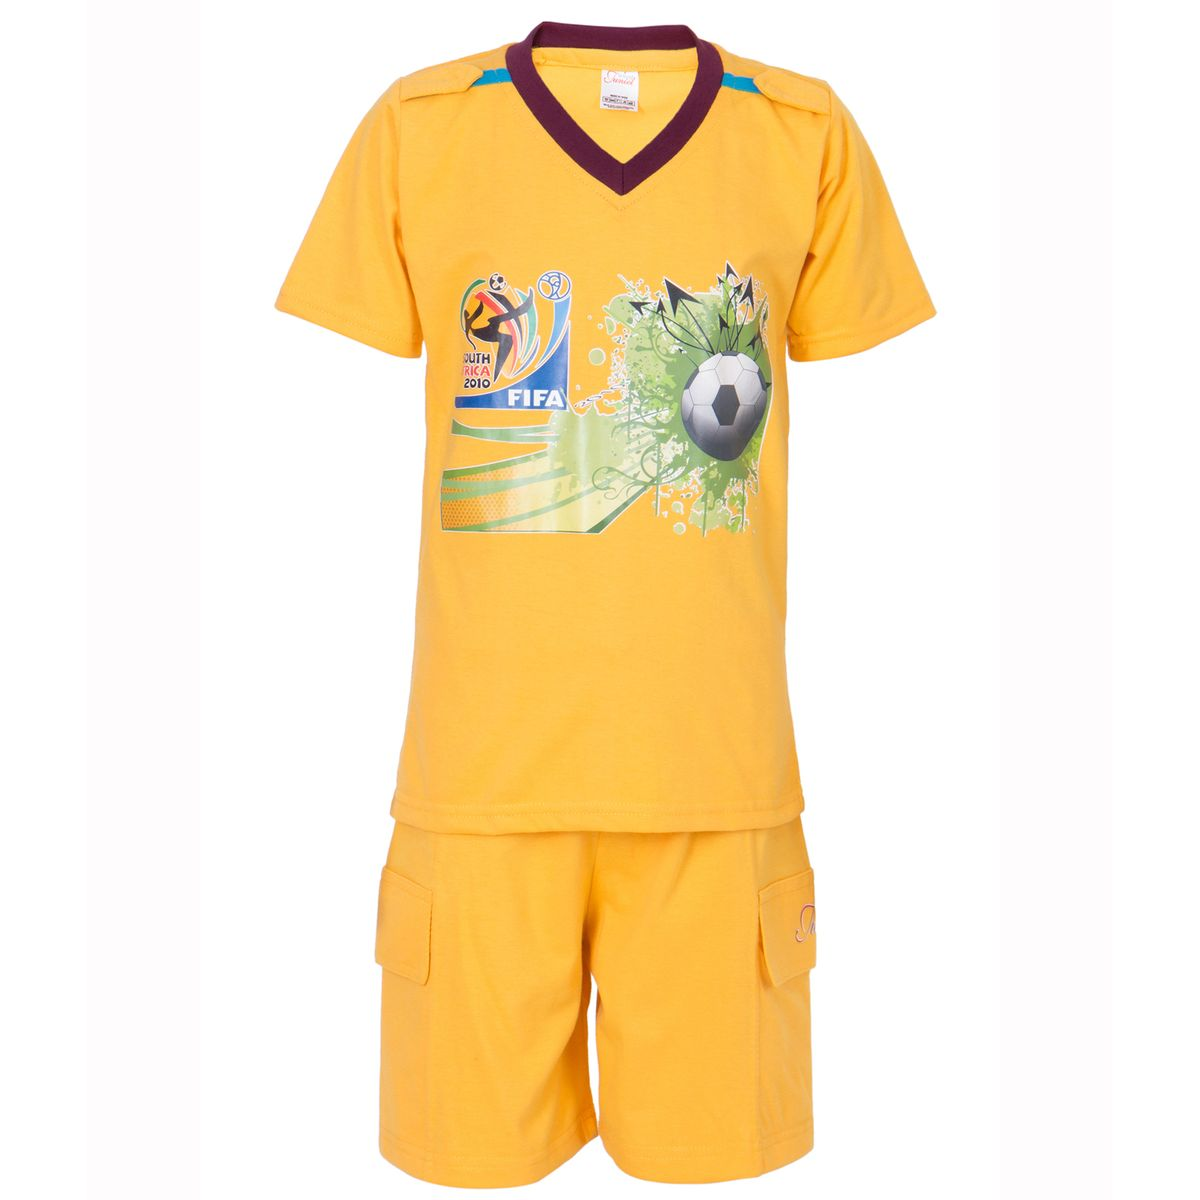 Ultrafit Junior Boys Cotton MultiColored Twin Sets- Pack of 5238